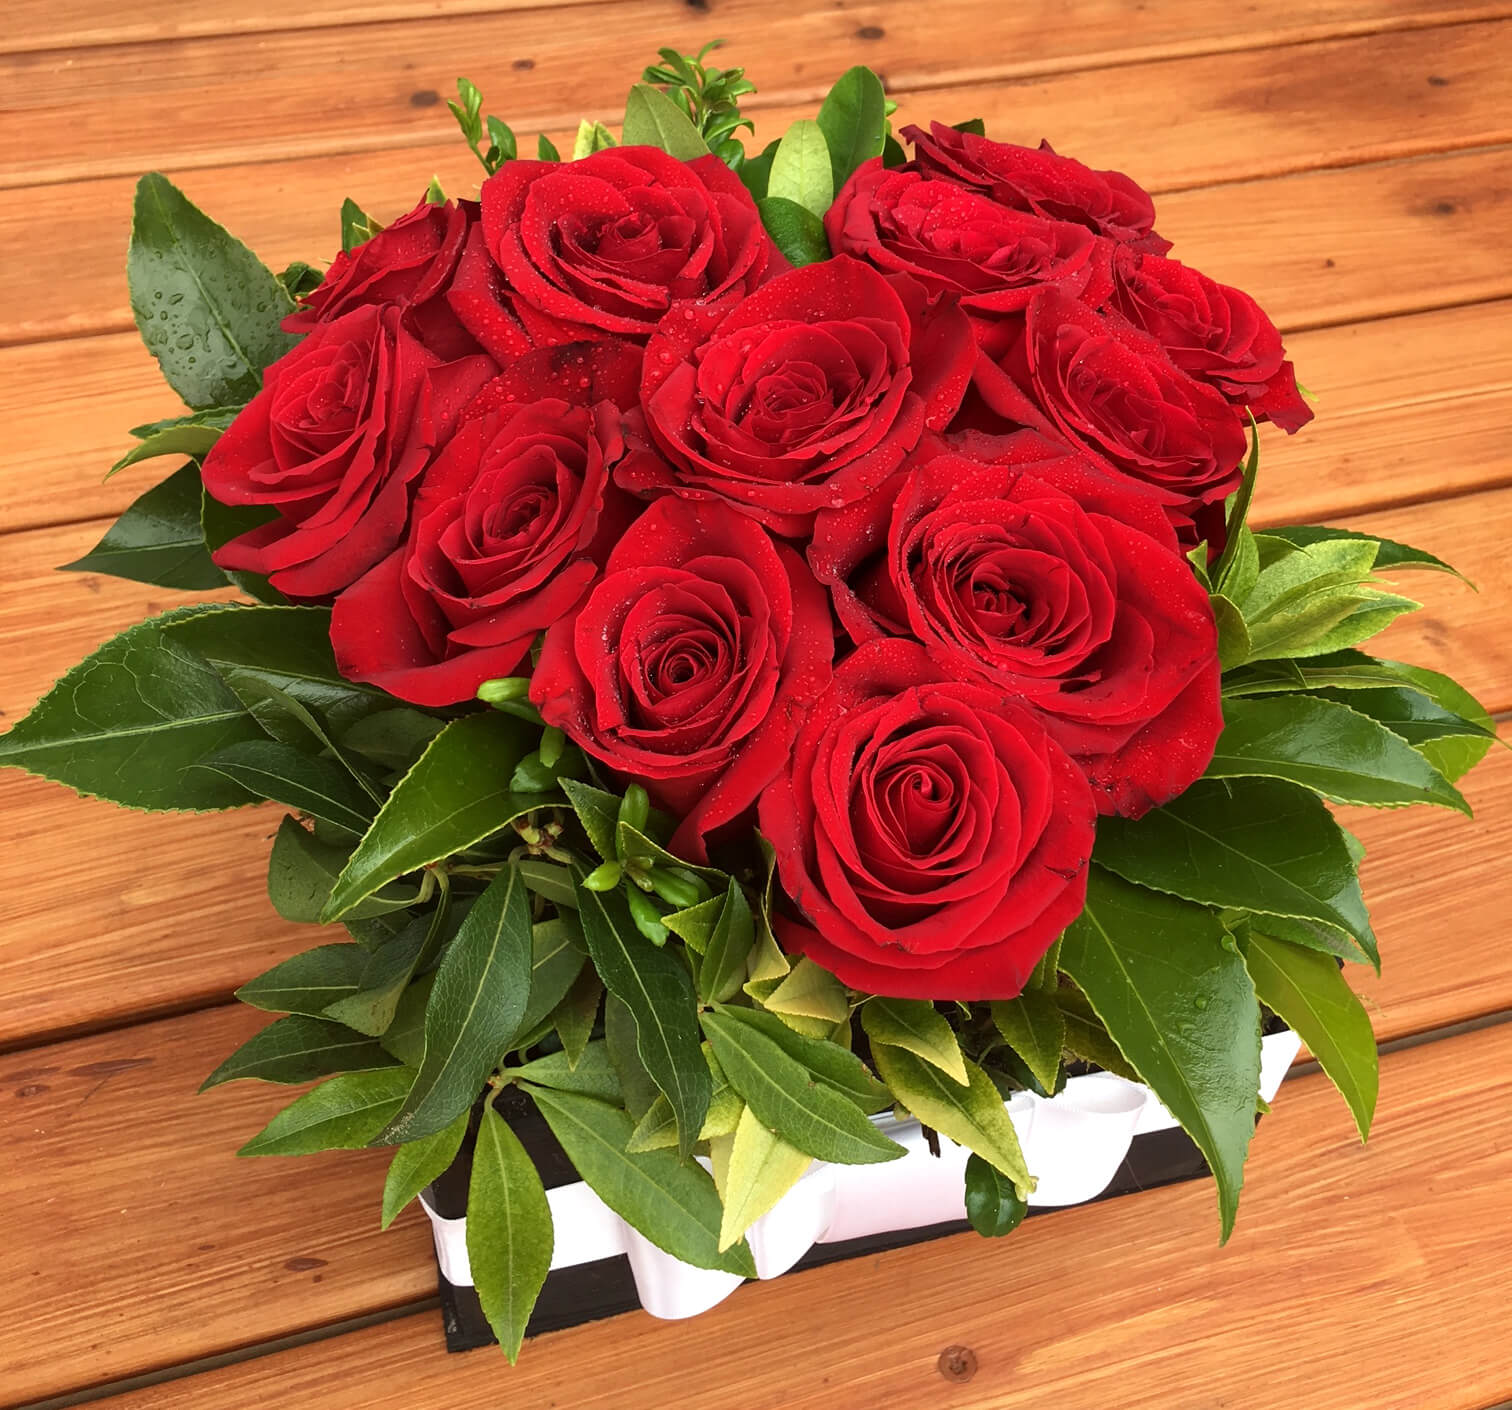 Rose delivery Marysville Washington | Heart Shaped Box | Free delivery